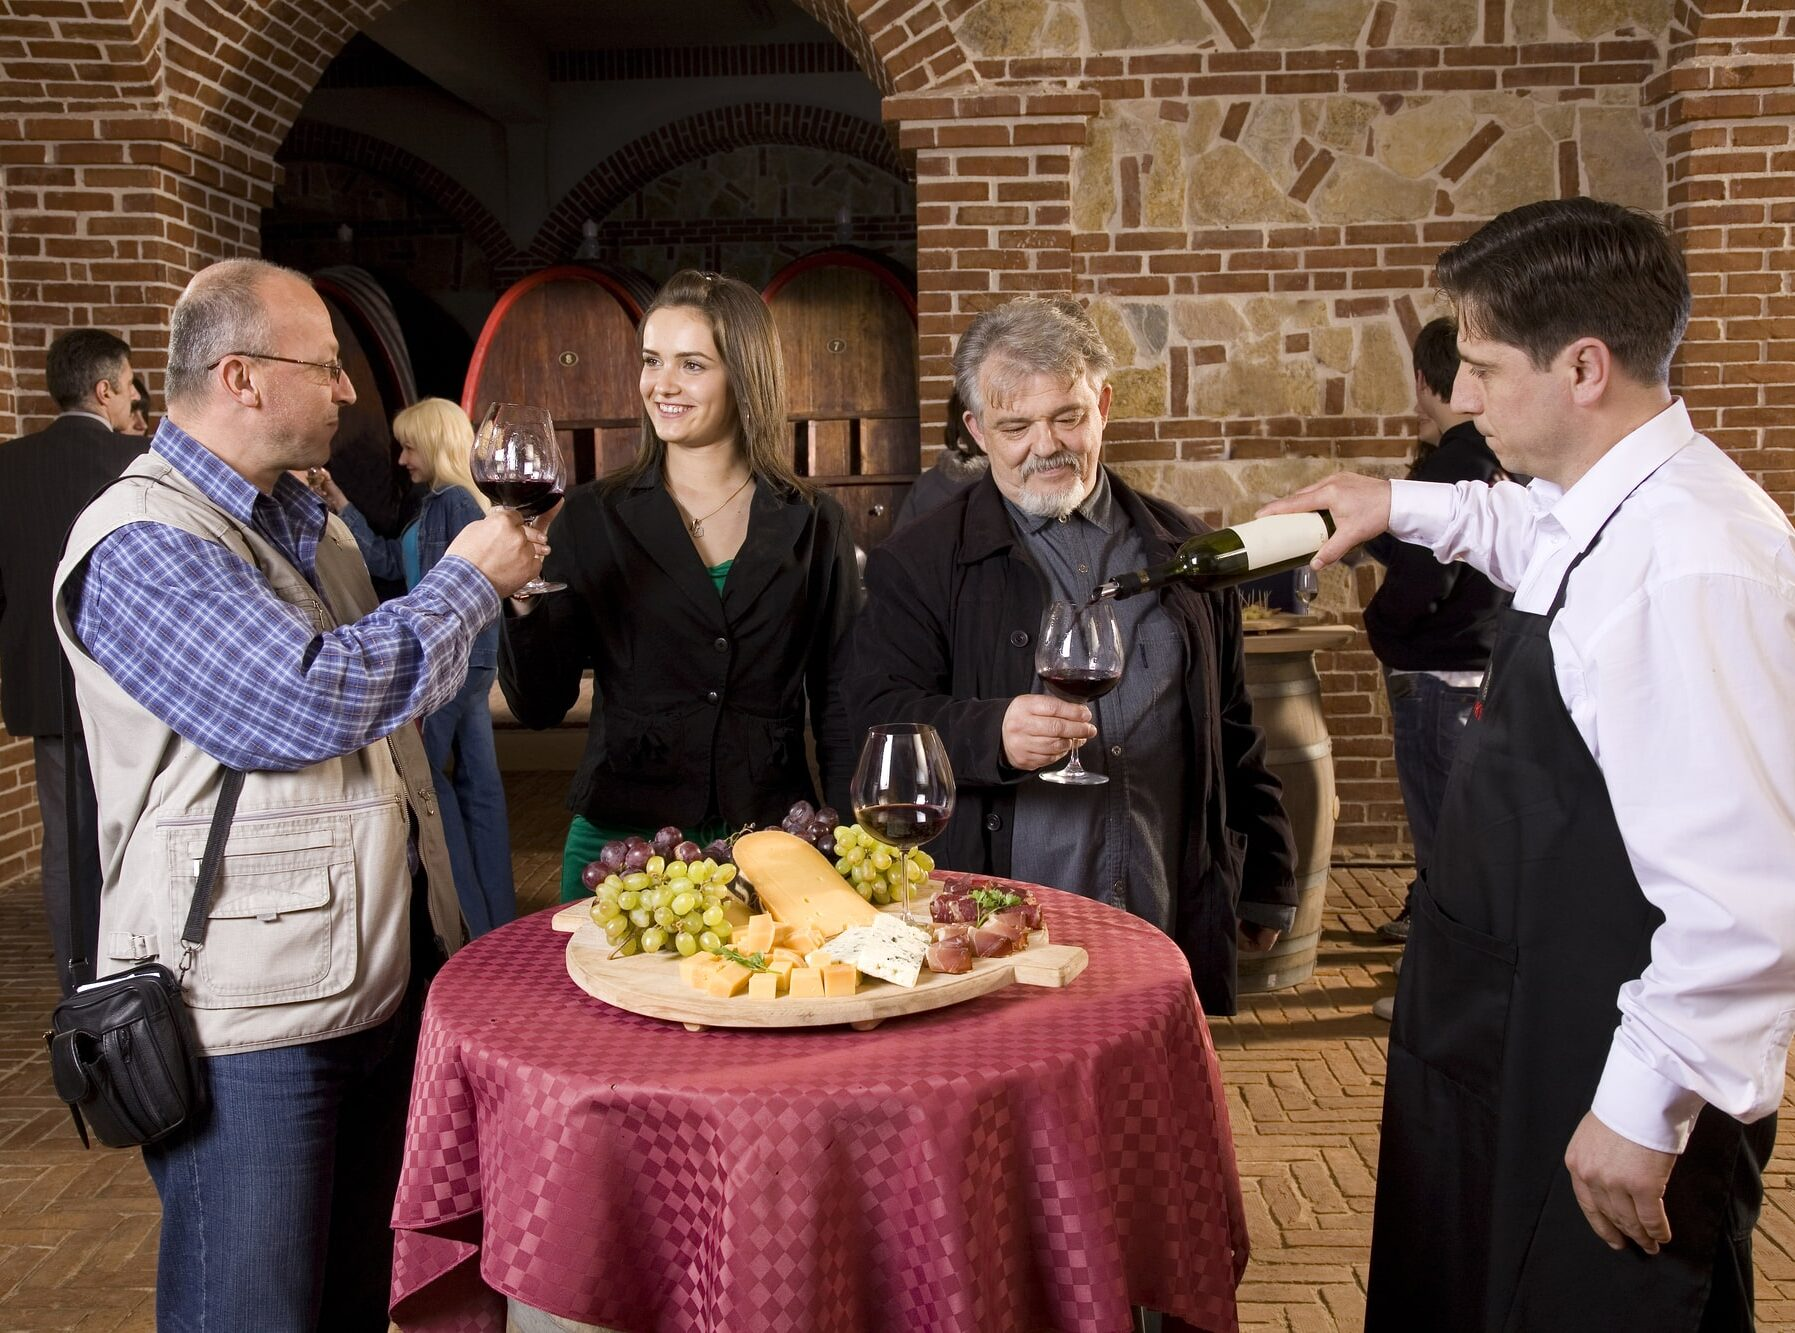 Tasting Room: Are We Having a Relation-sip? Or Are We Just Going Through the Motions?